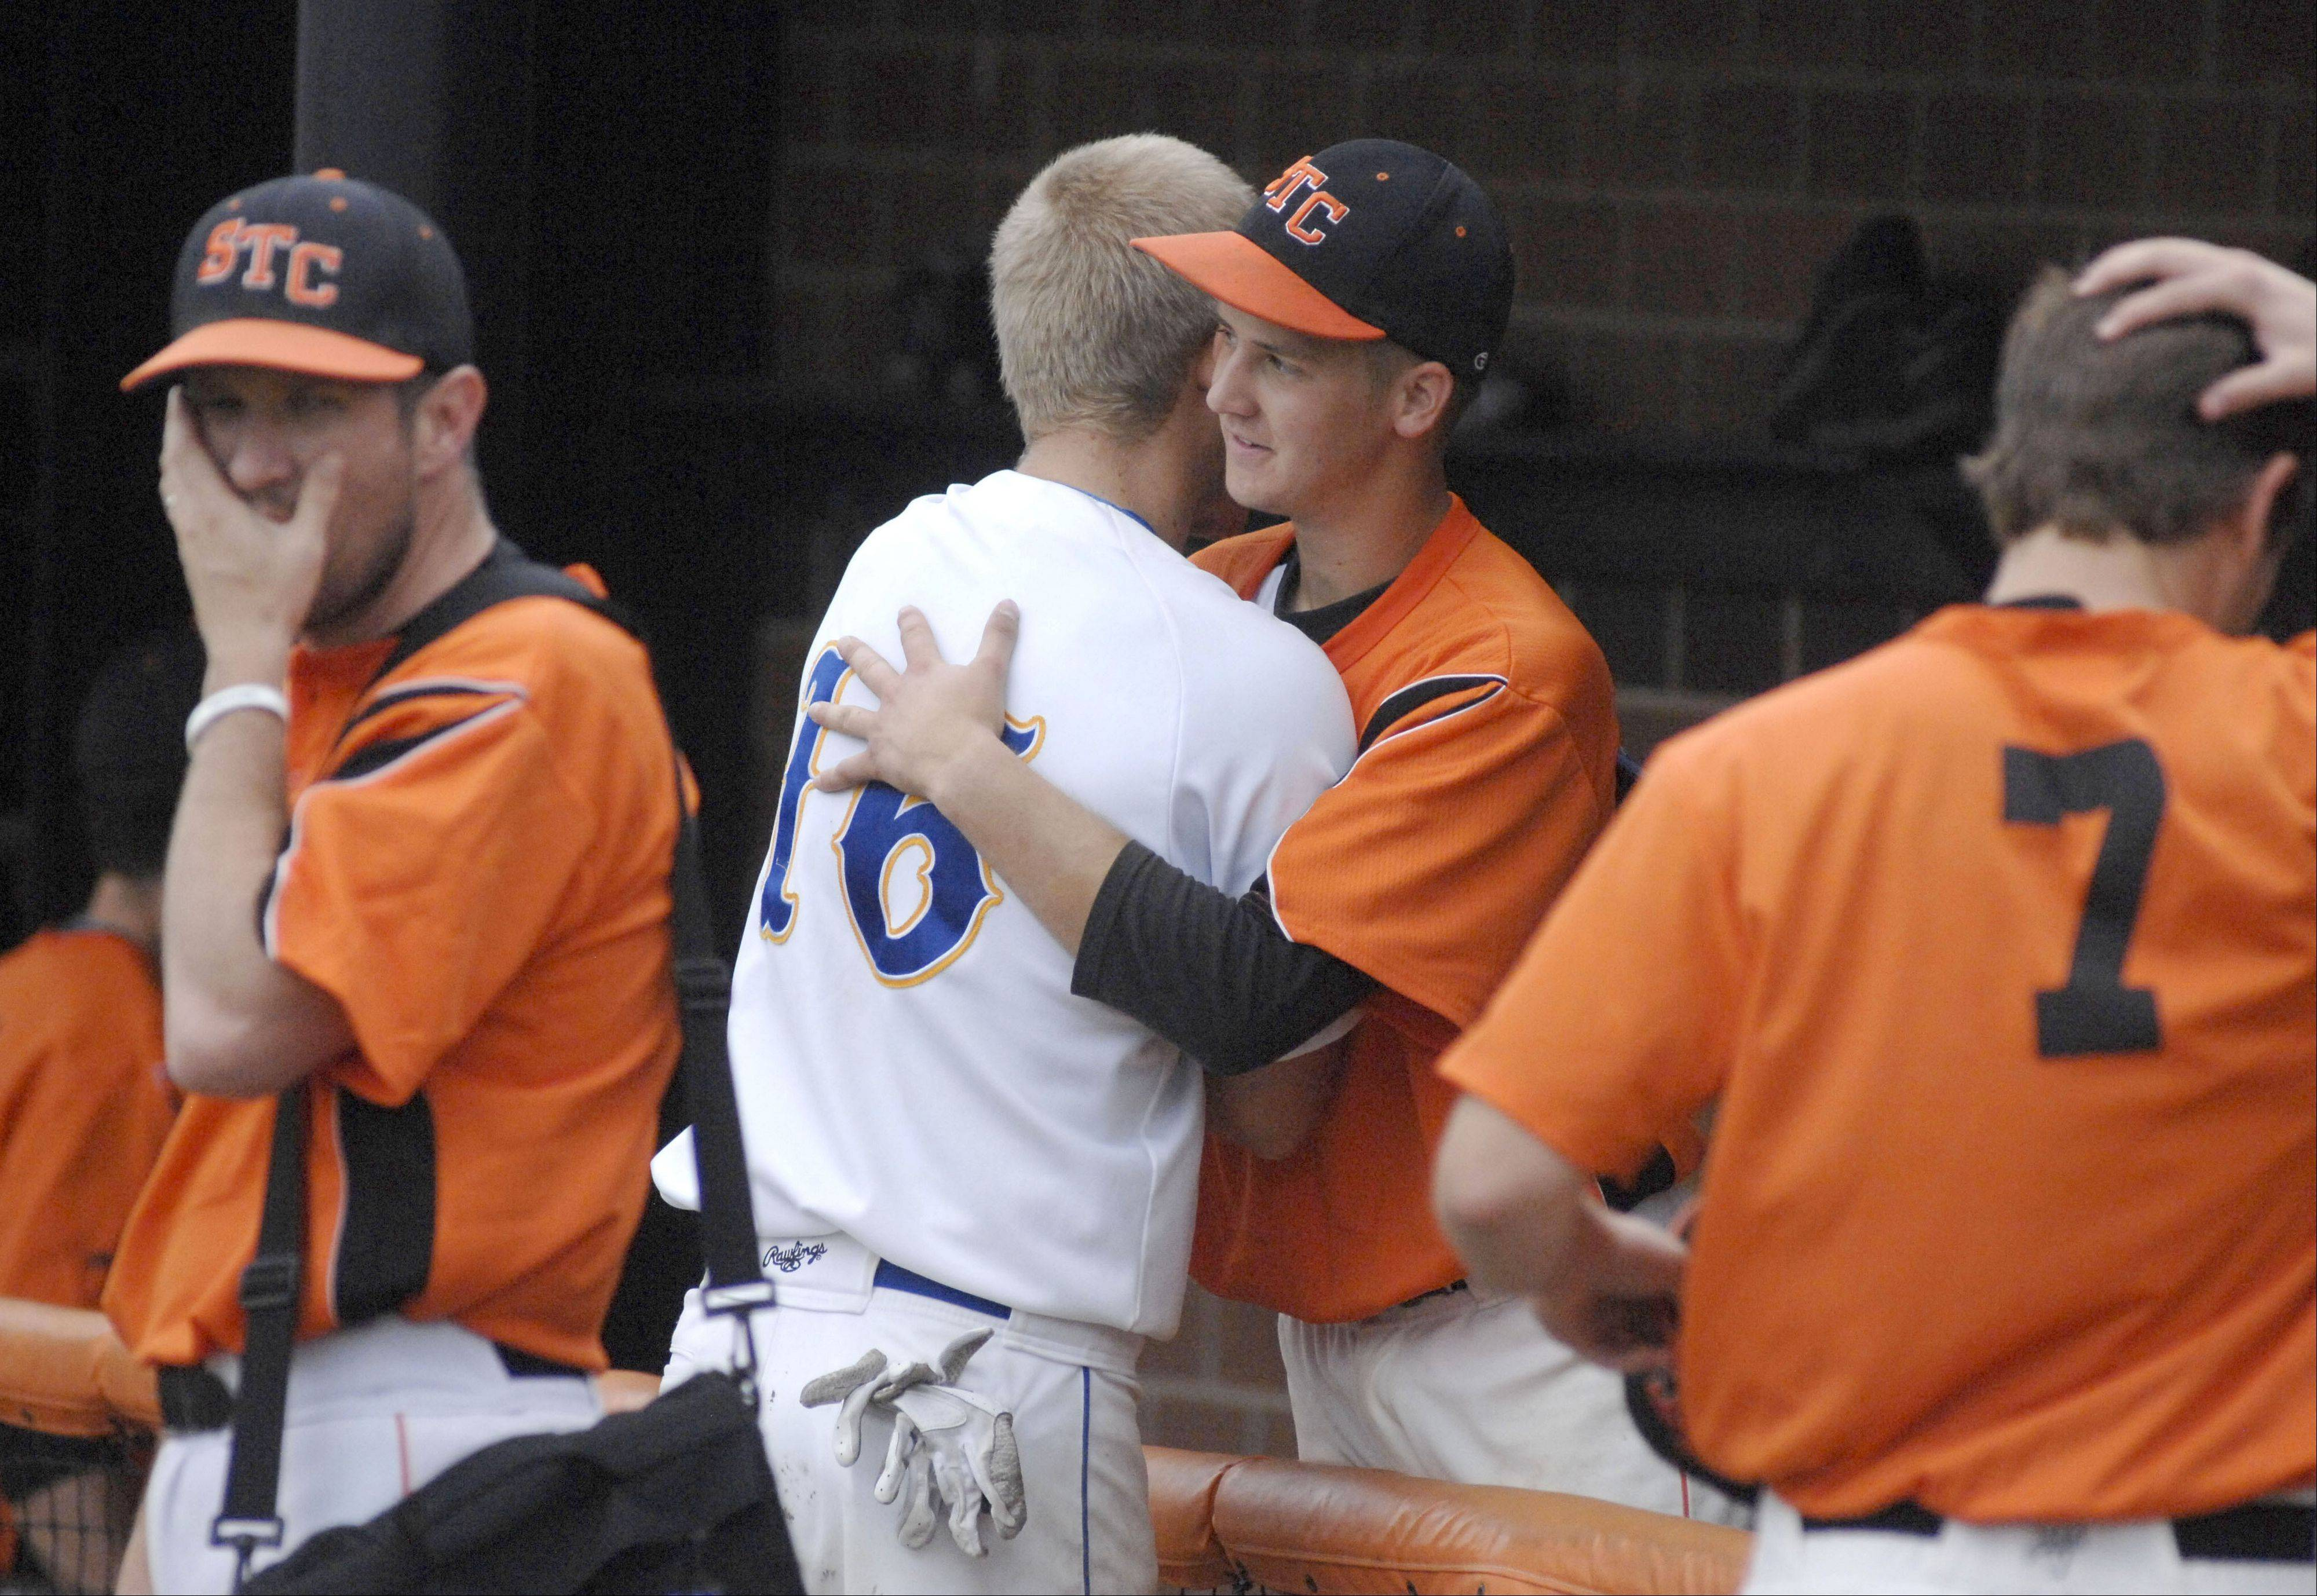 Wheaton North's Tom Cassier congratulates St. Charles East's Adam Rojas in the Saints dugout after St. Charles East's Class 4A sectional championship win on Saturday, June 1.